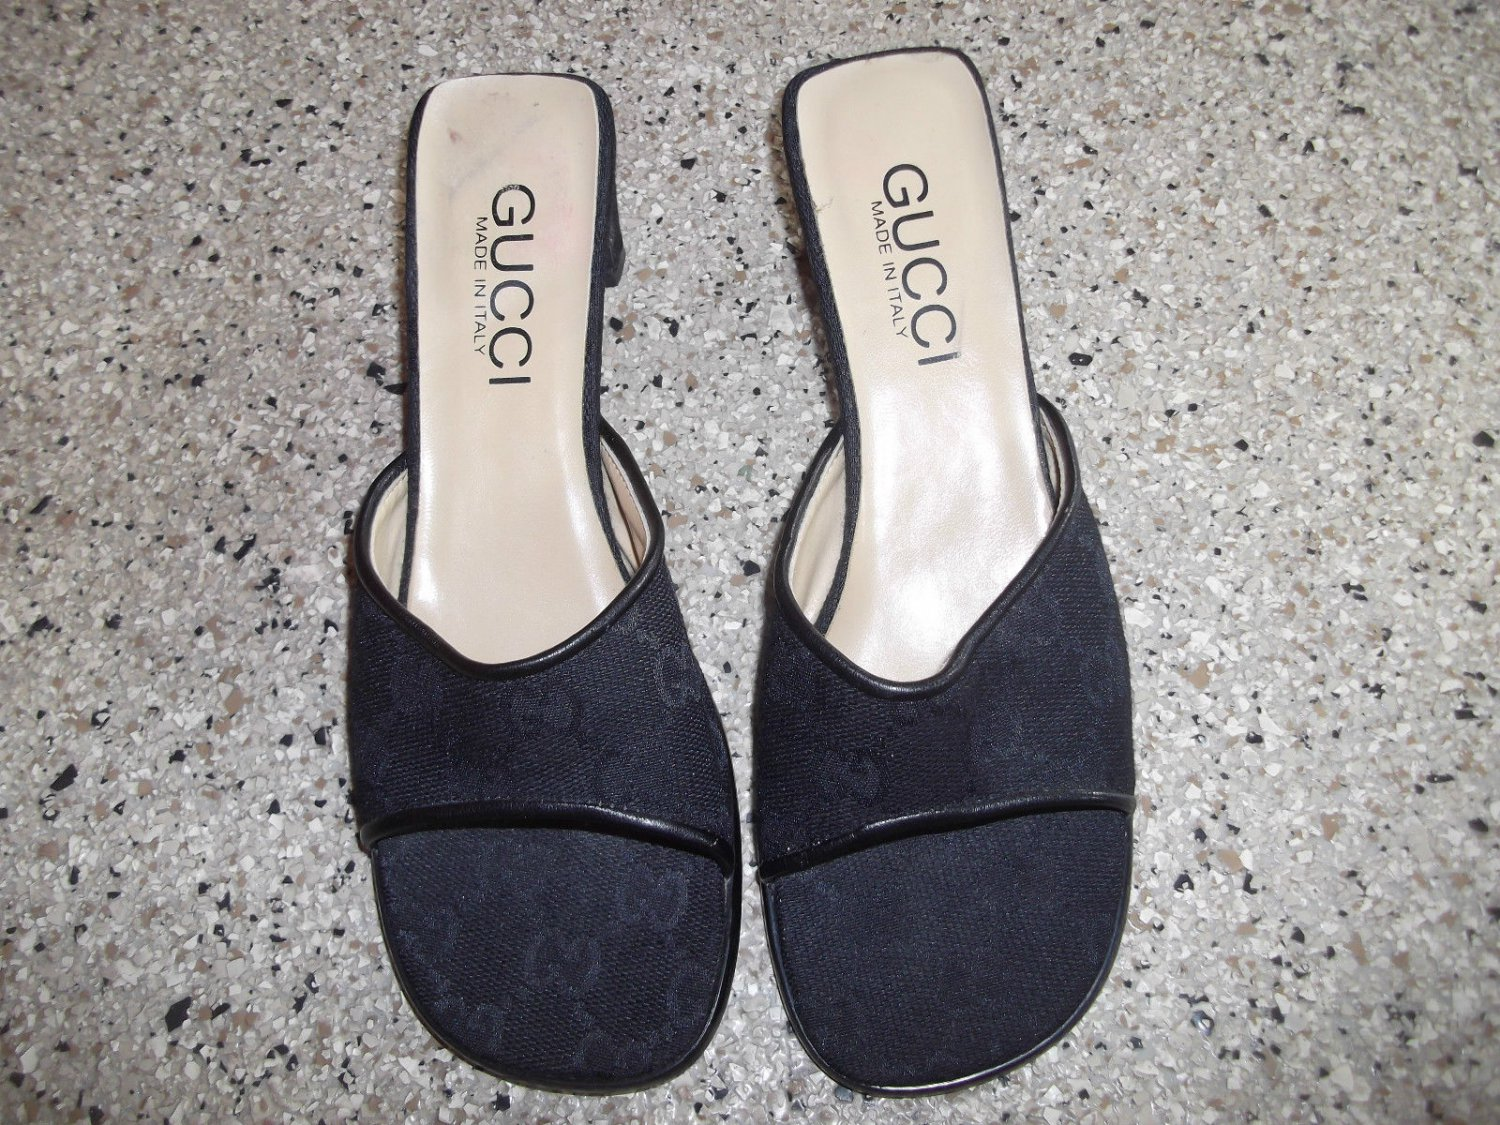 Lay a way for Bonnie Part 1 - Gucci Monogram Mules/Slides Size 7